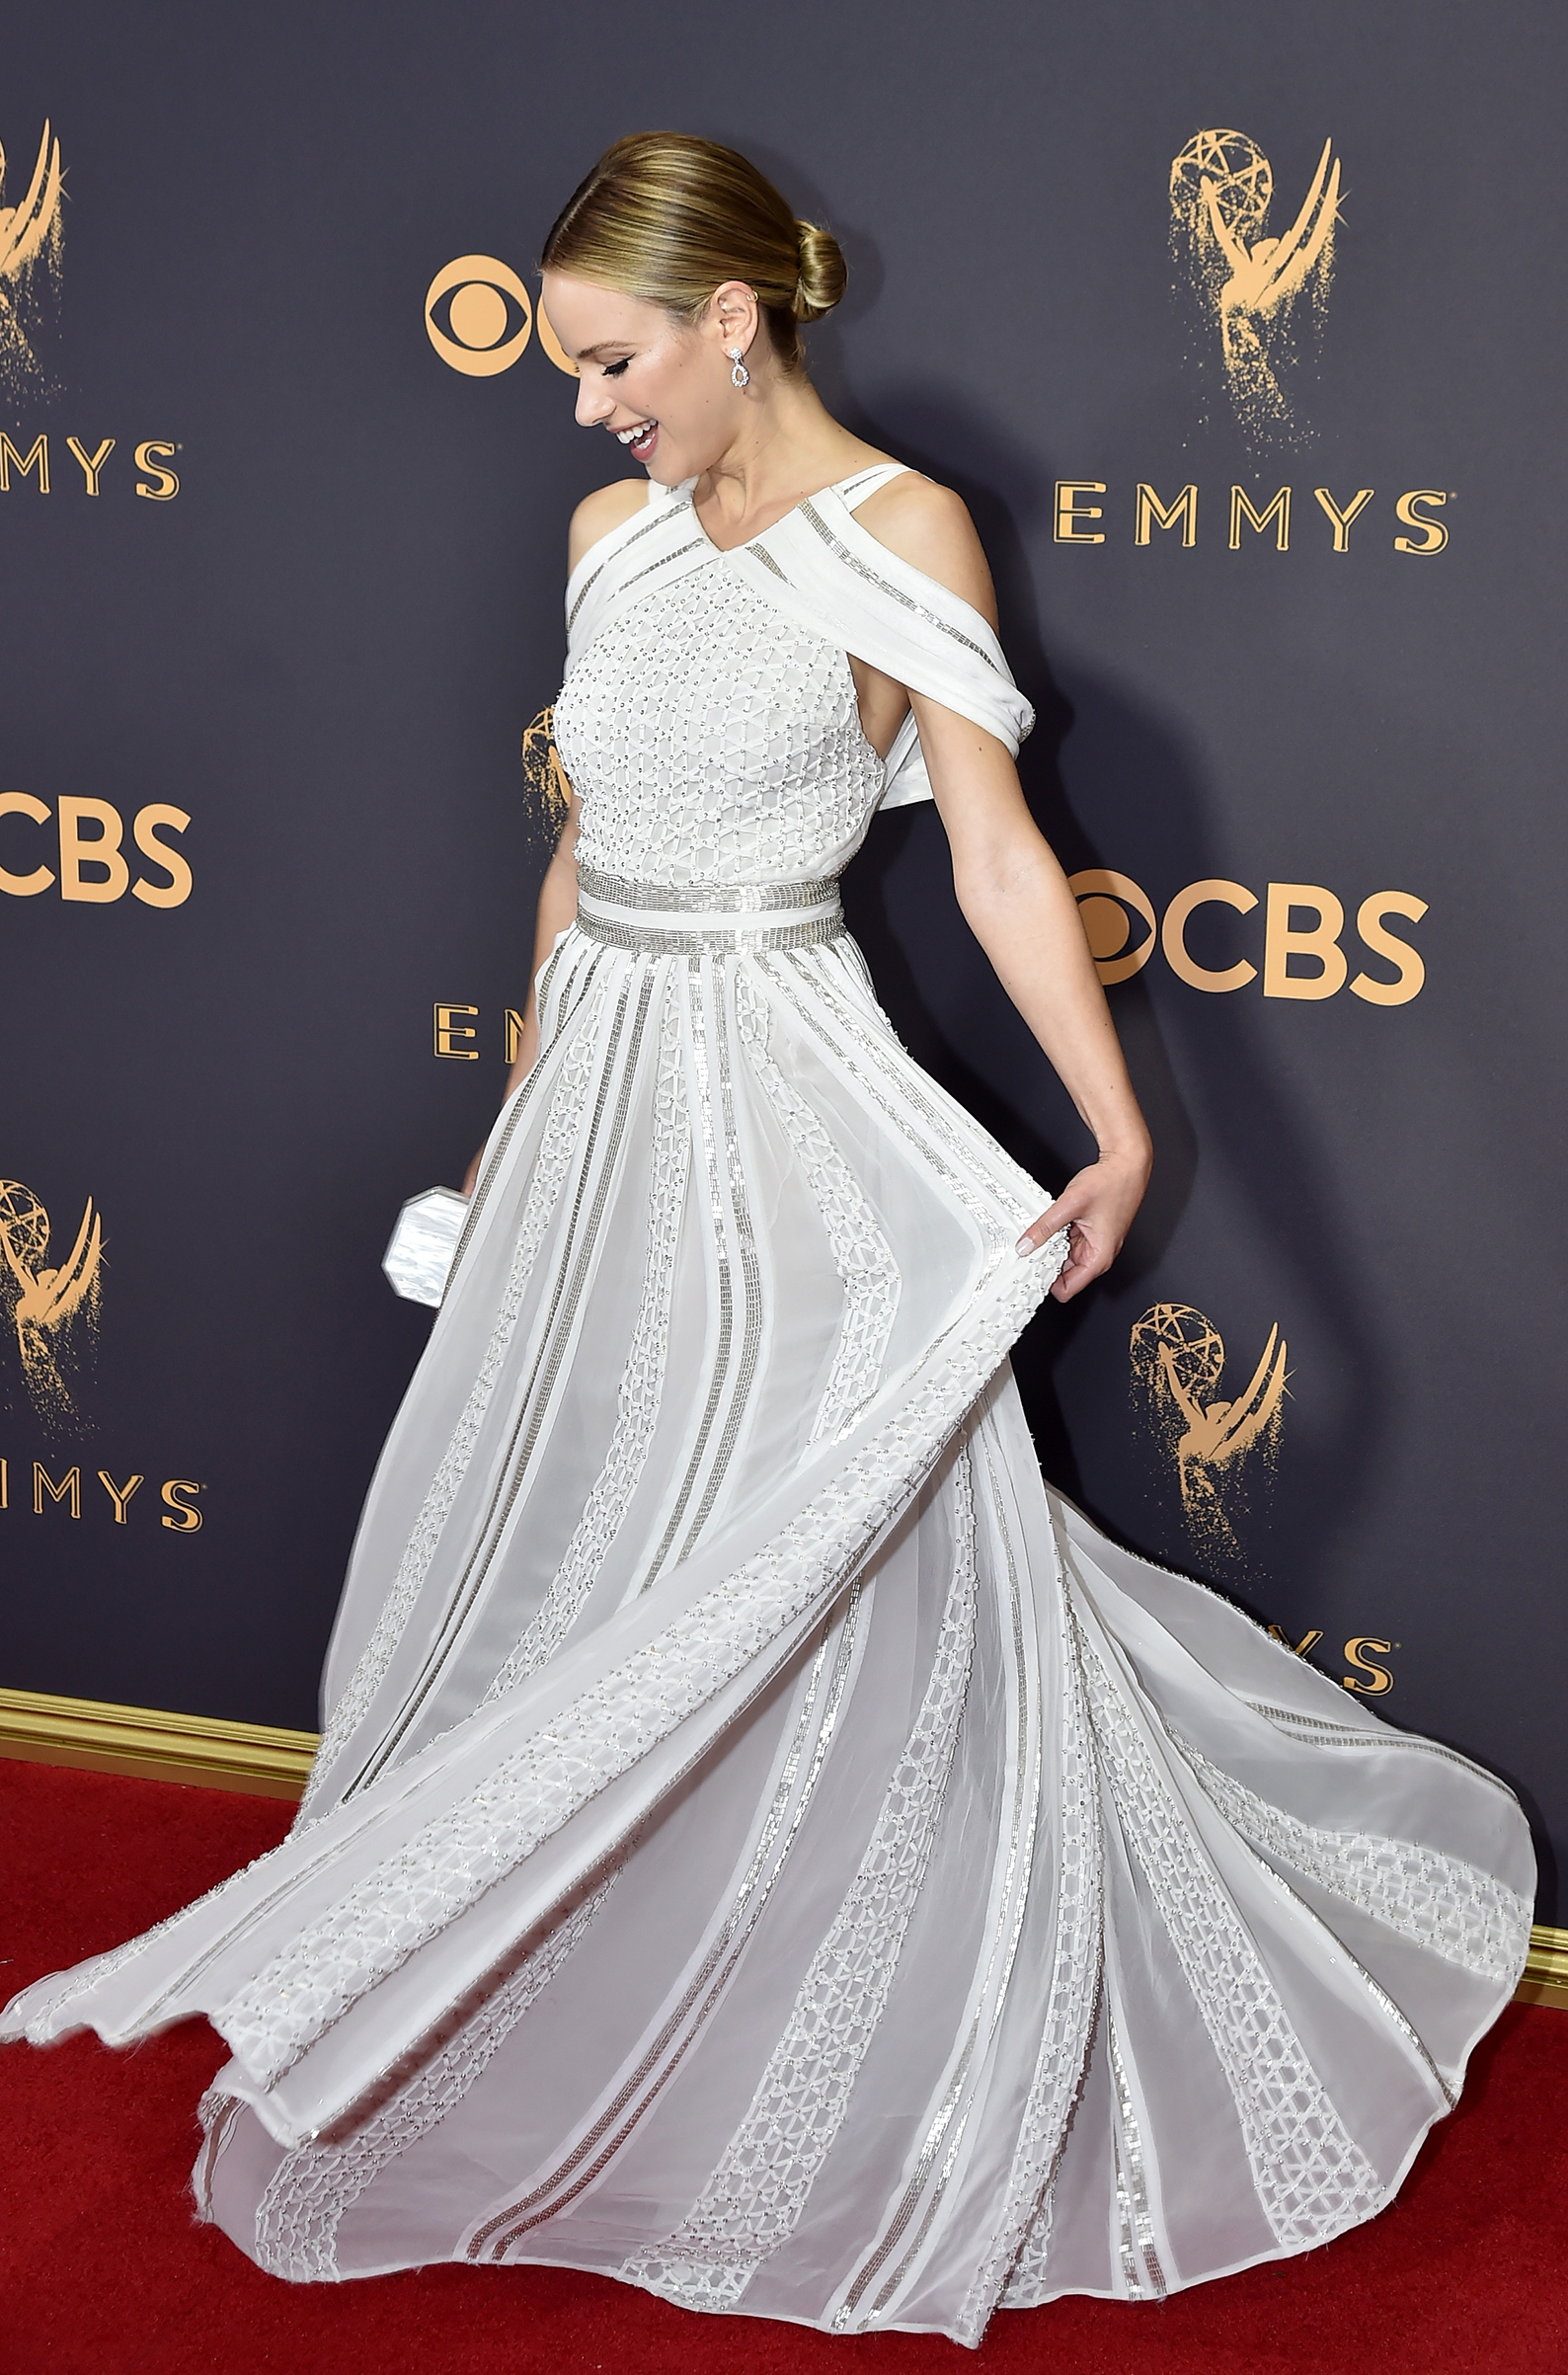 Actor Halston Sage attends the 69th Annual Primetime Emmy Awards at Microsoft Theater on September 17, 2017 in Los Angeles, California.